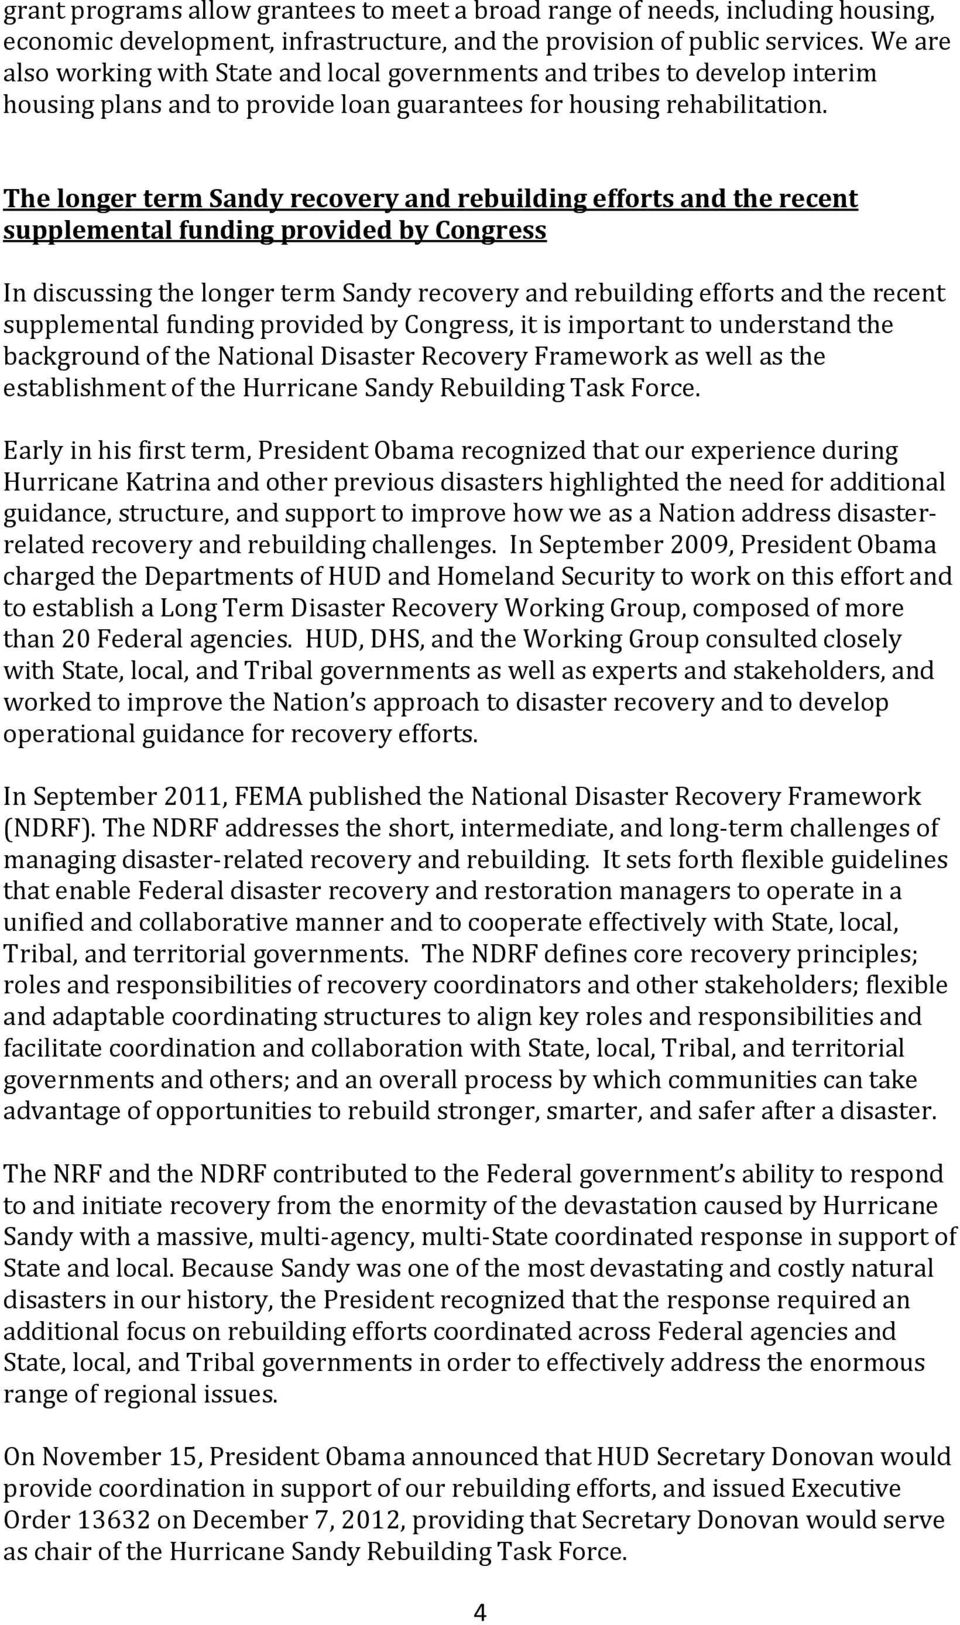 The longer term Sandy recovery and rebuilding efforts and the recent supplemental funding provided by Congress In discussing the longer term Sandy recovery and rebuilding efforts and the recent